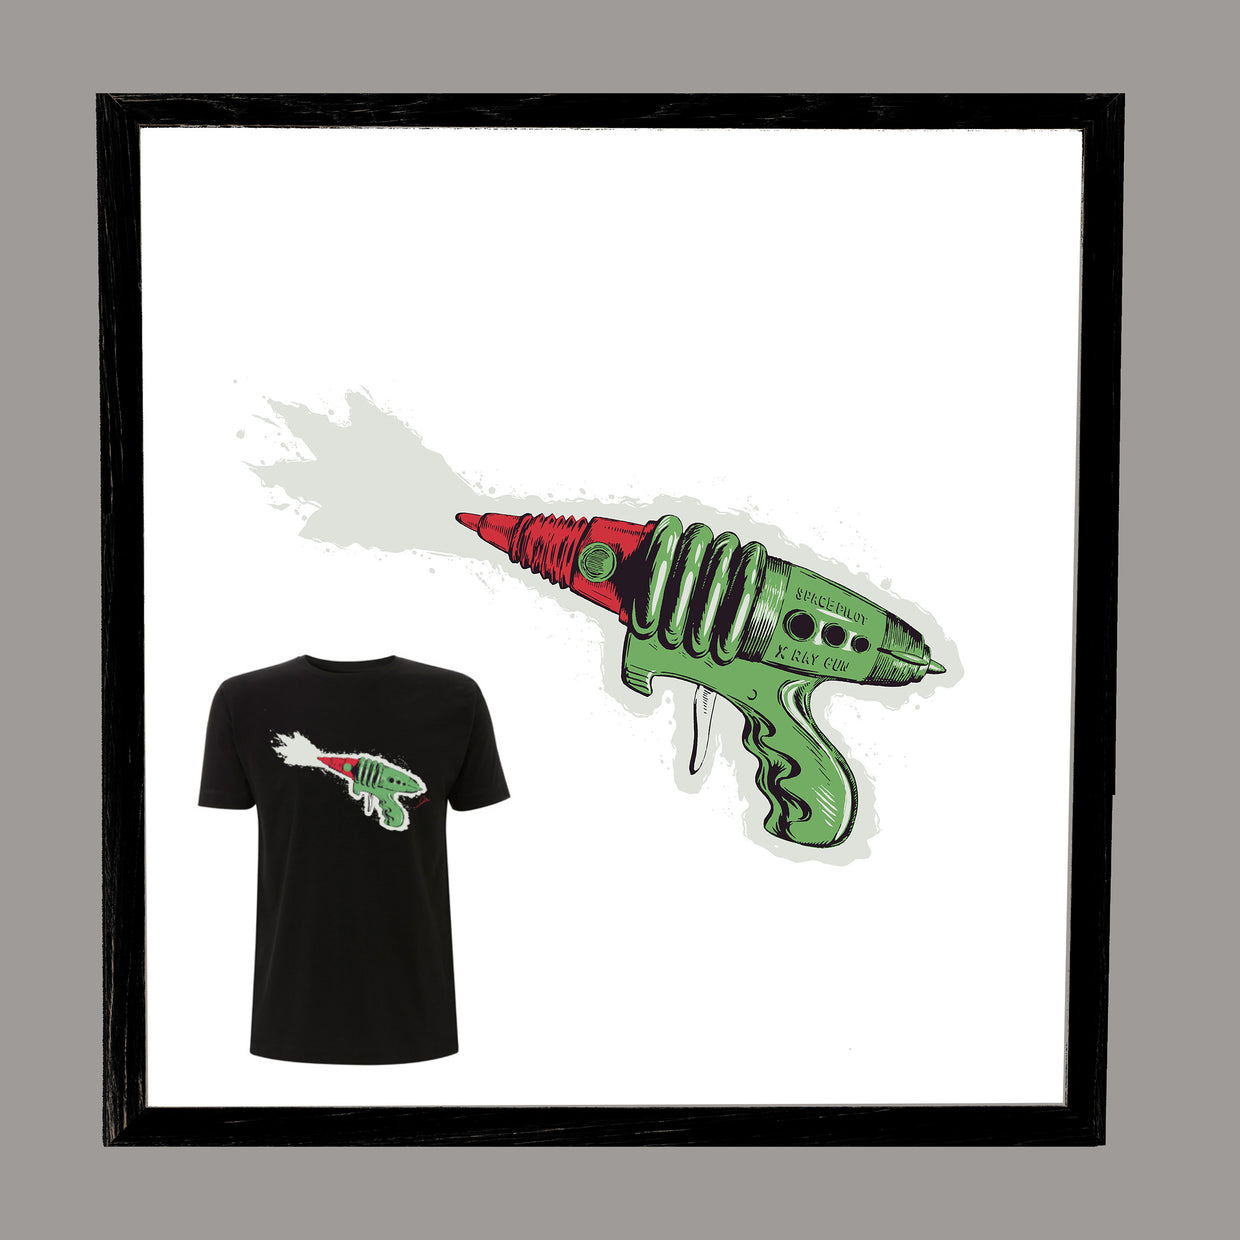 LITTLE BARRIE Collaboration: Ray Gun Wall Art and T-Shirt Set